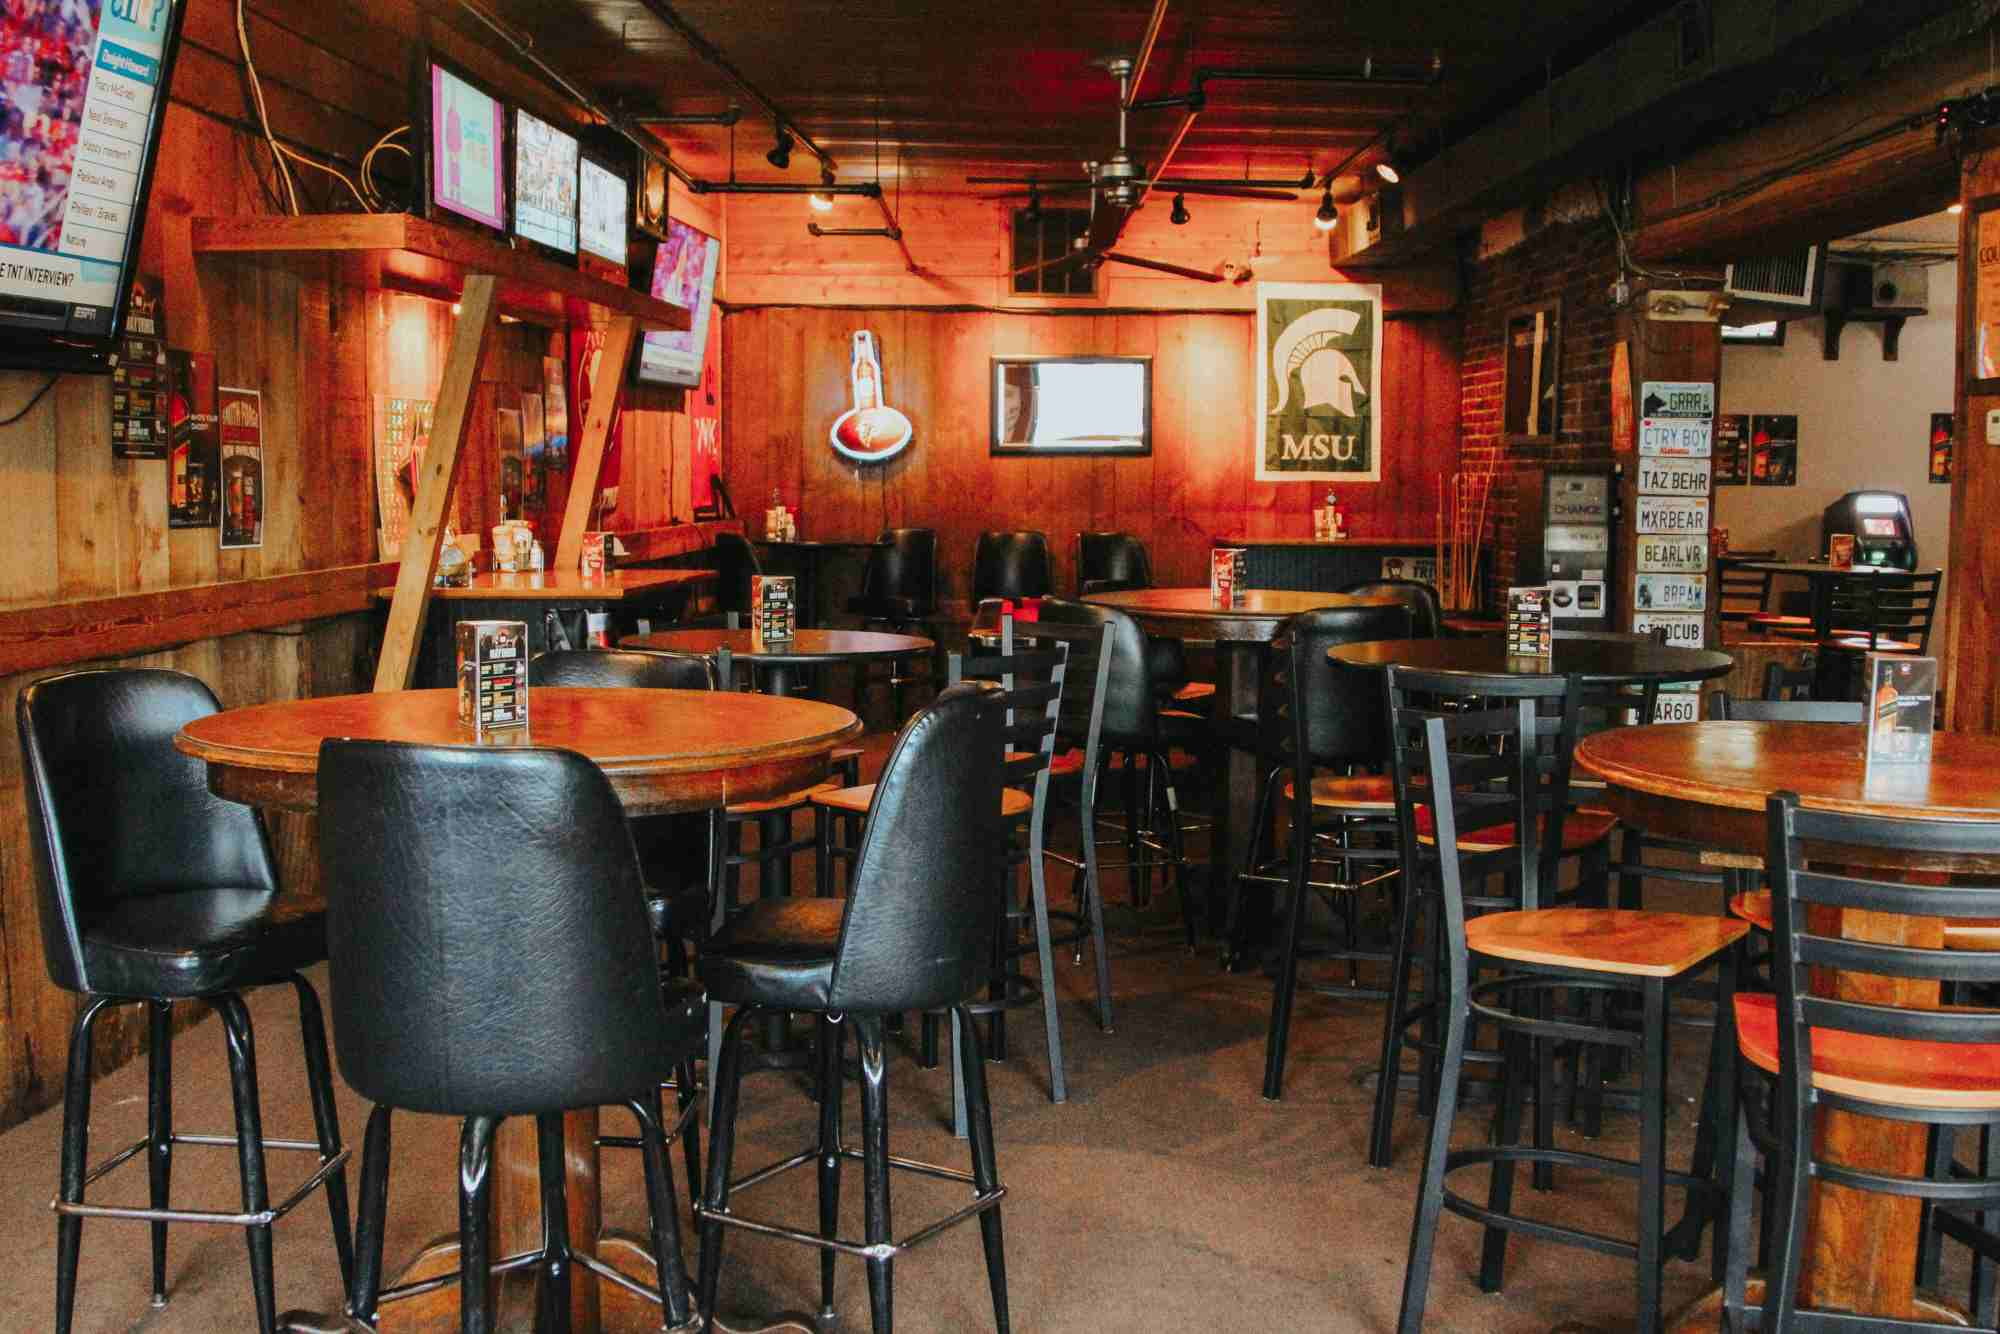 Tables and chairs situated near televisions at Woofs Atlanta.